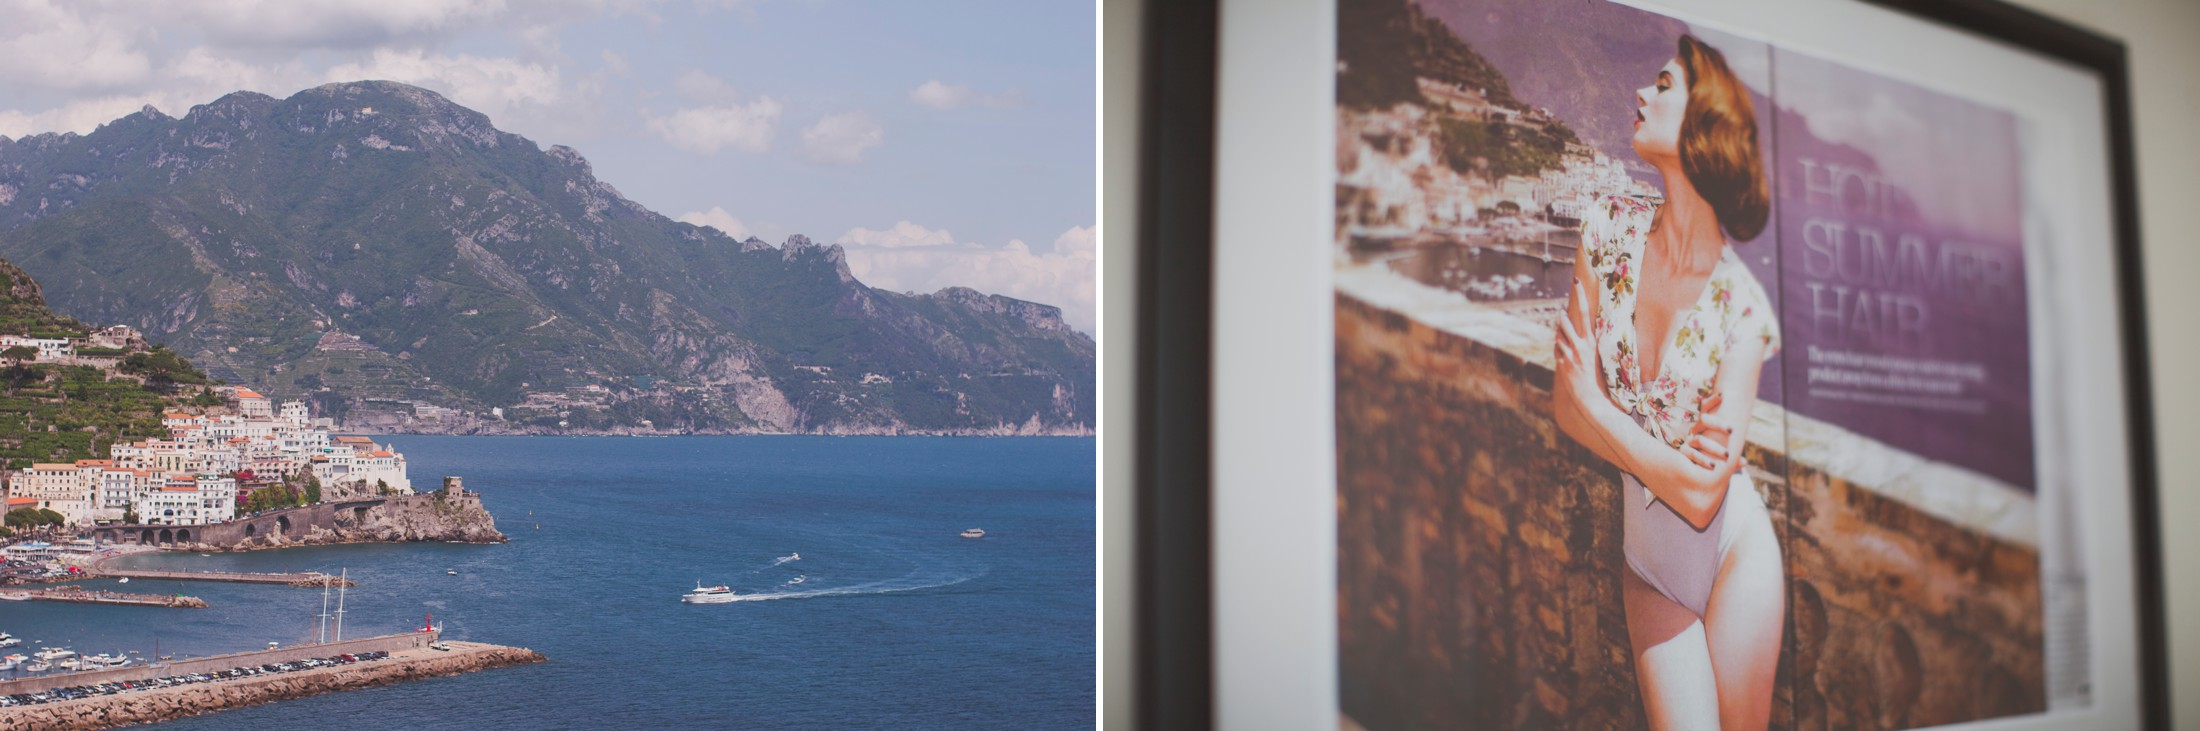 collage sea view and a poster on the wall